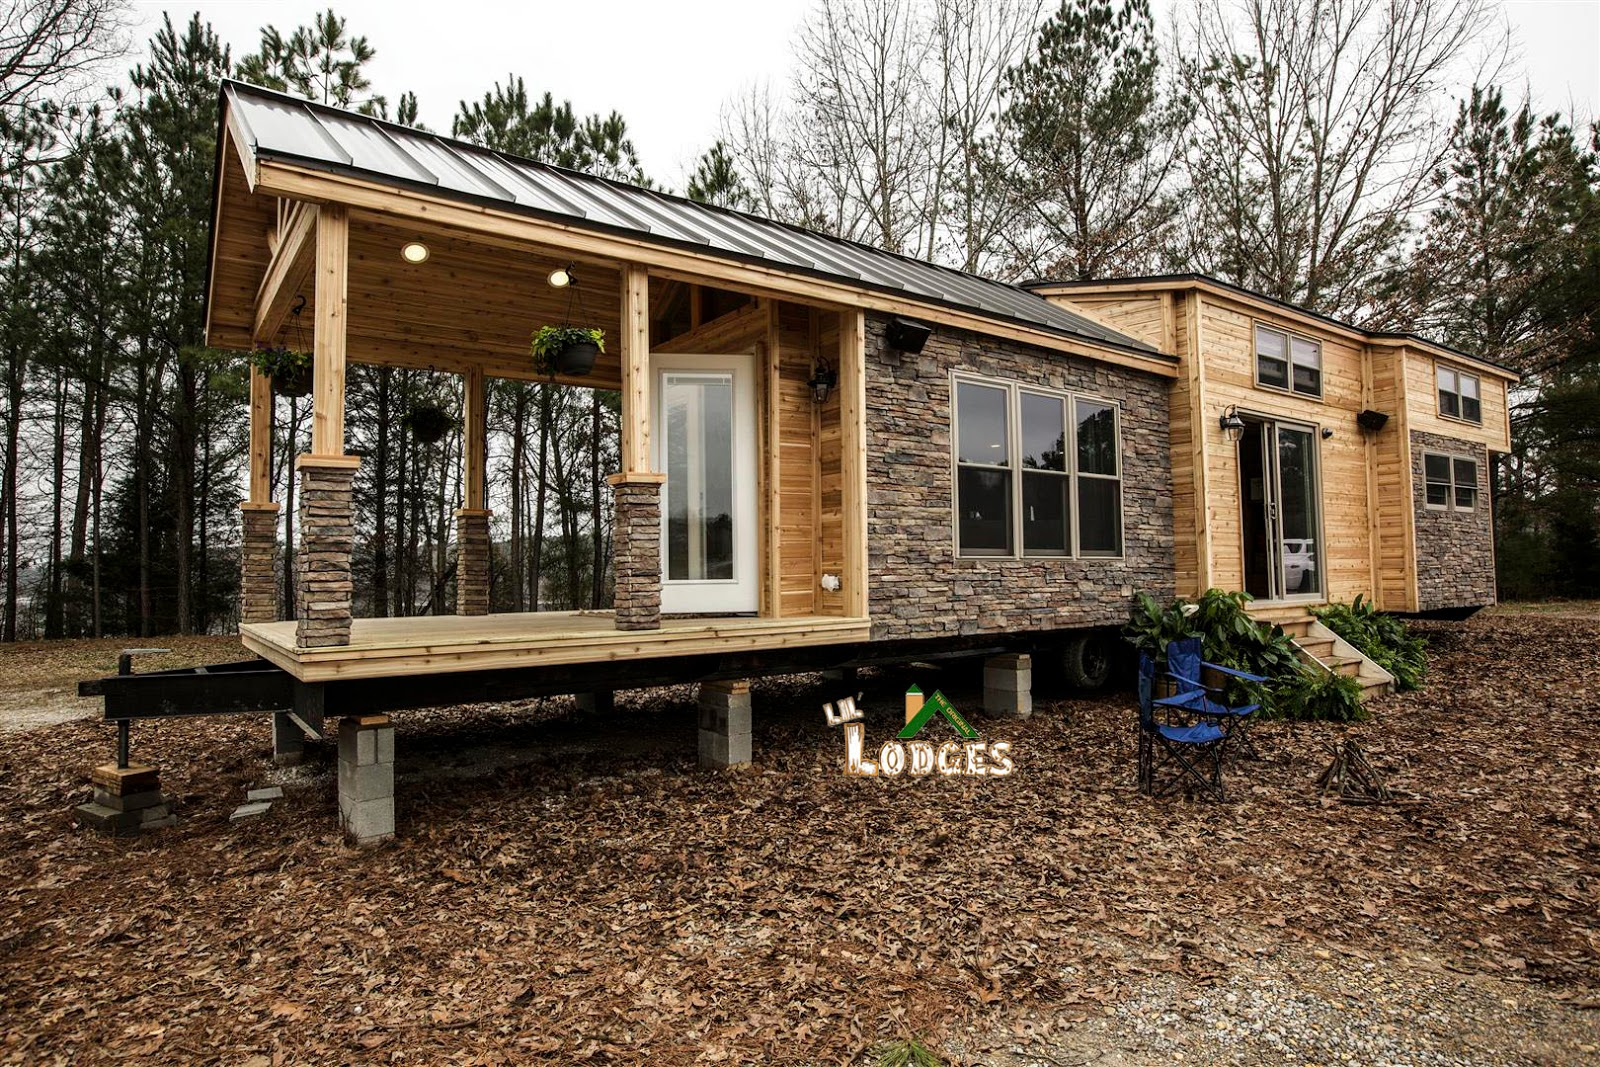 A Cozy RV Tiny House in Cobleskill NY TINY HOUSE TOWN